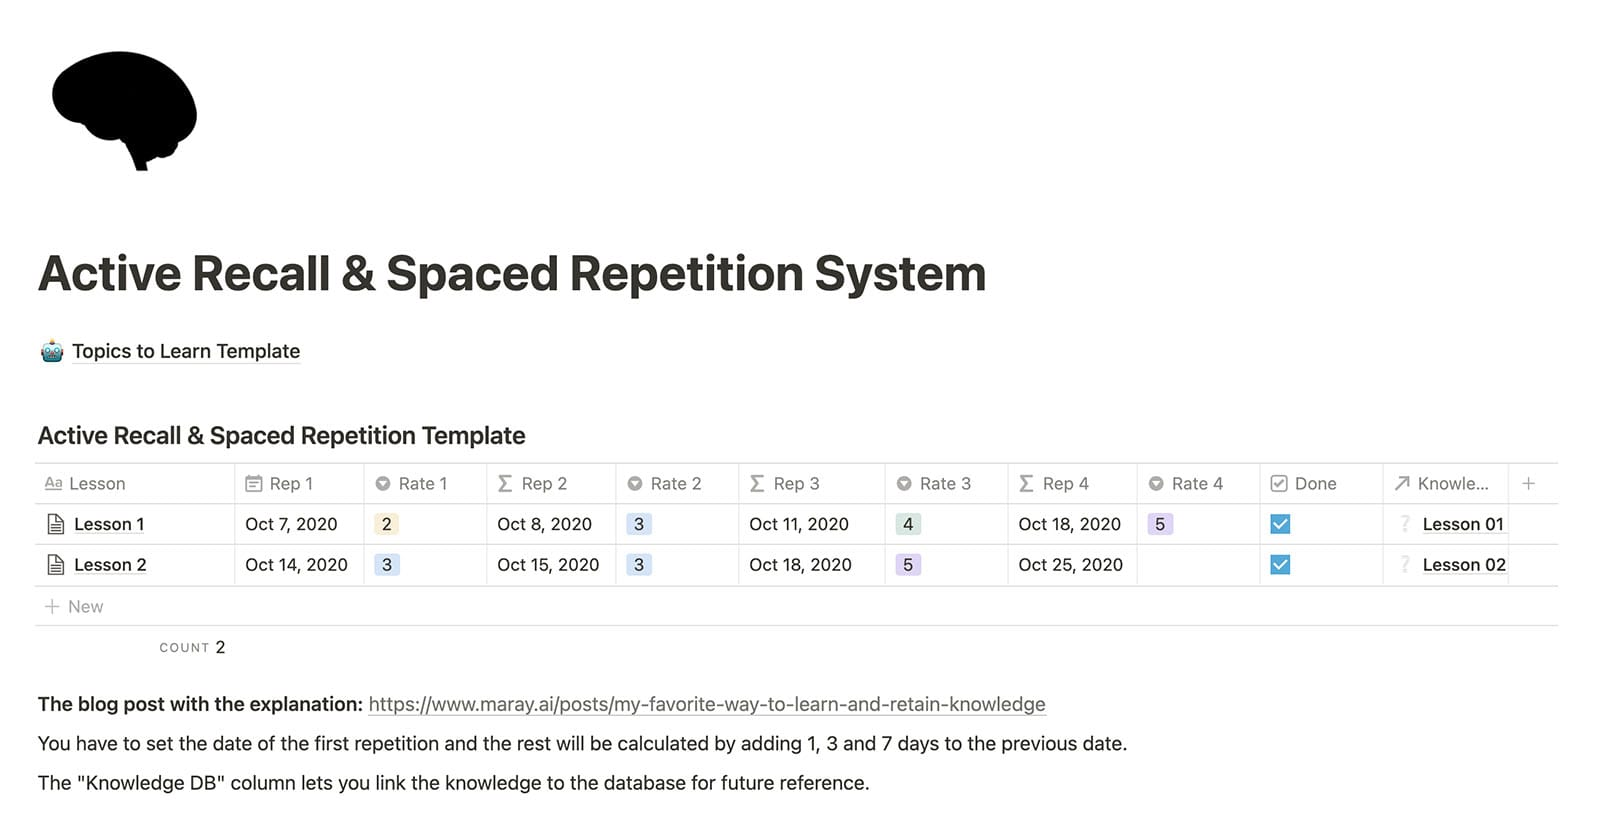 Active recall and spaced repetition Notion template.